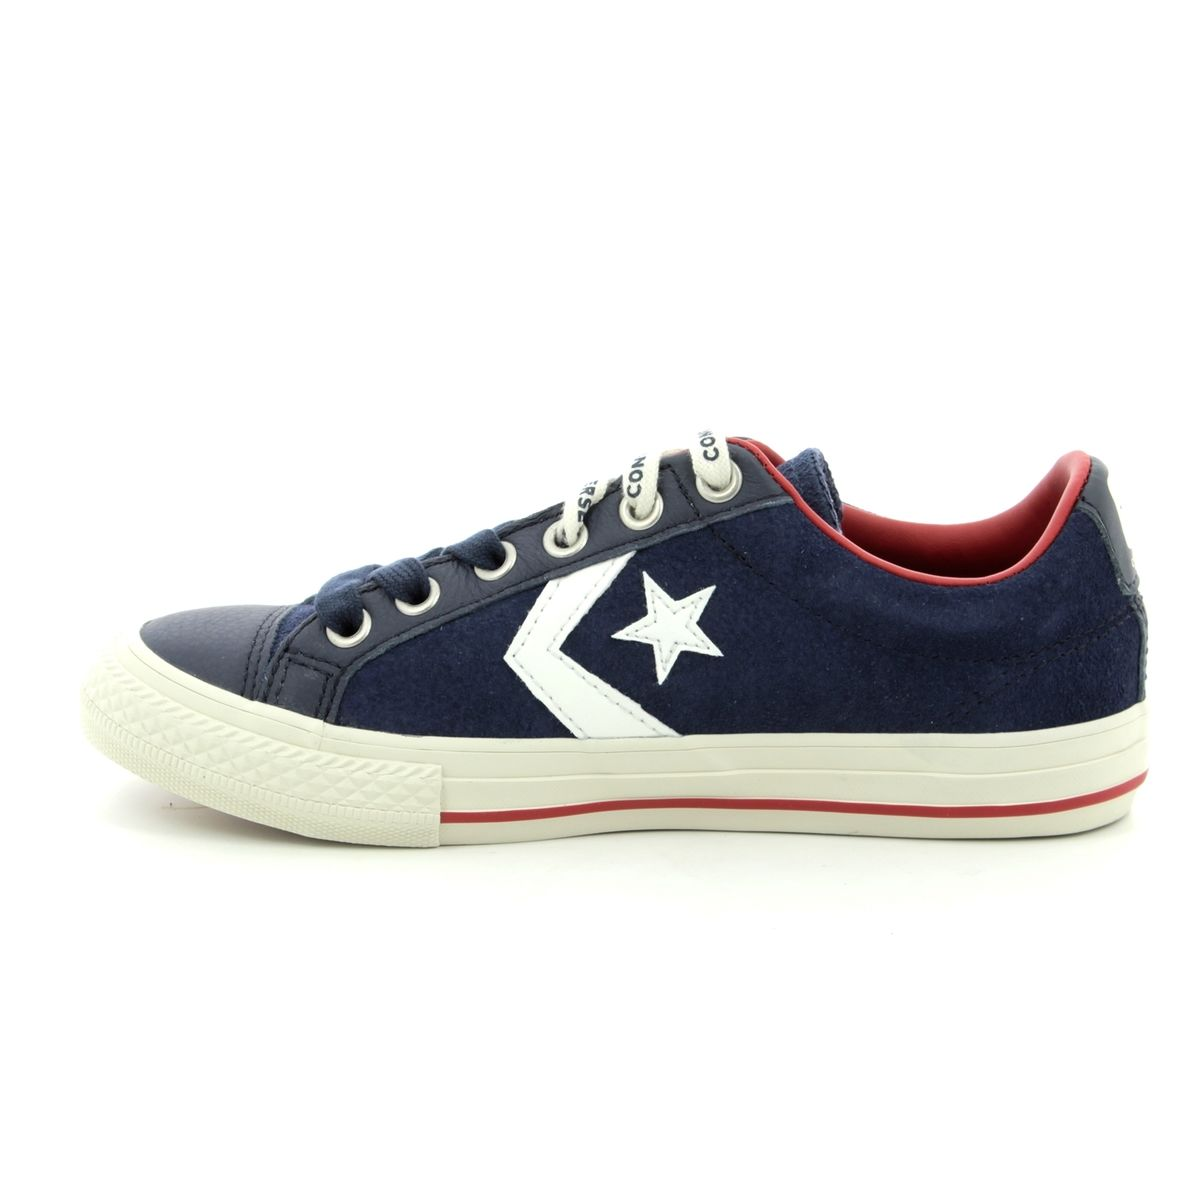 adc56bd8d8e Converse Star Player Junior 662766C-70 Navy Suede Boys Trainers